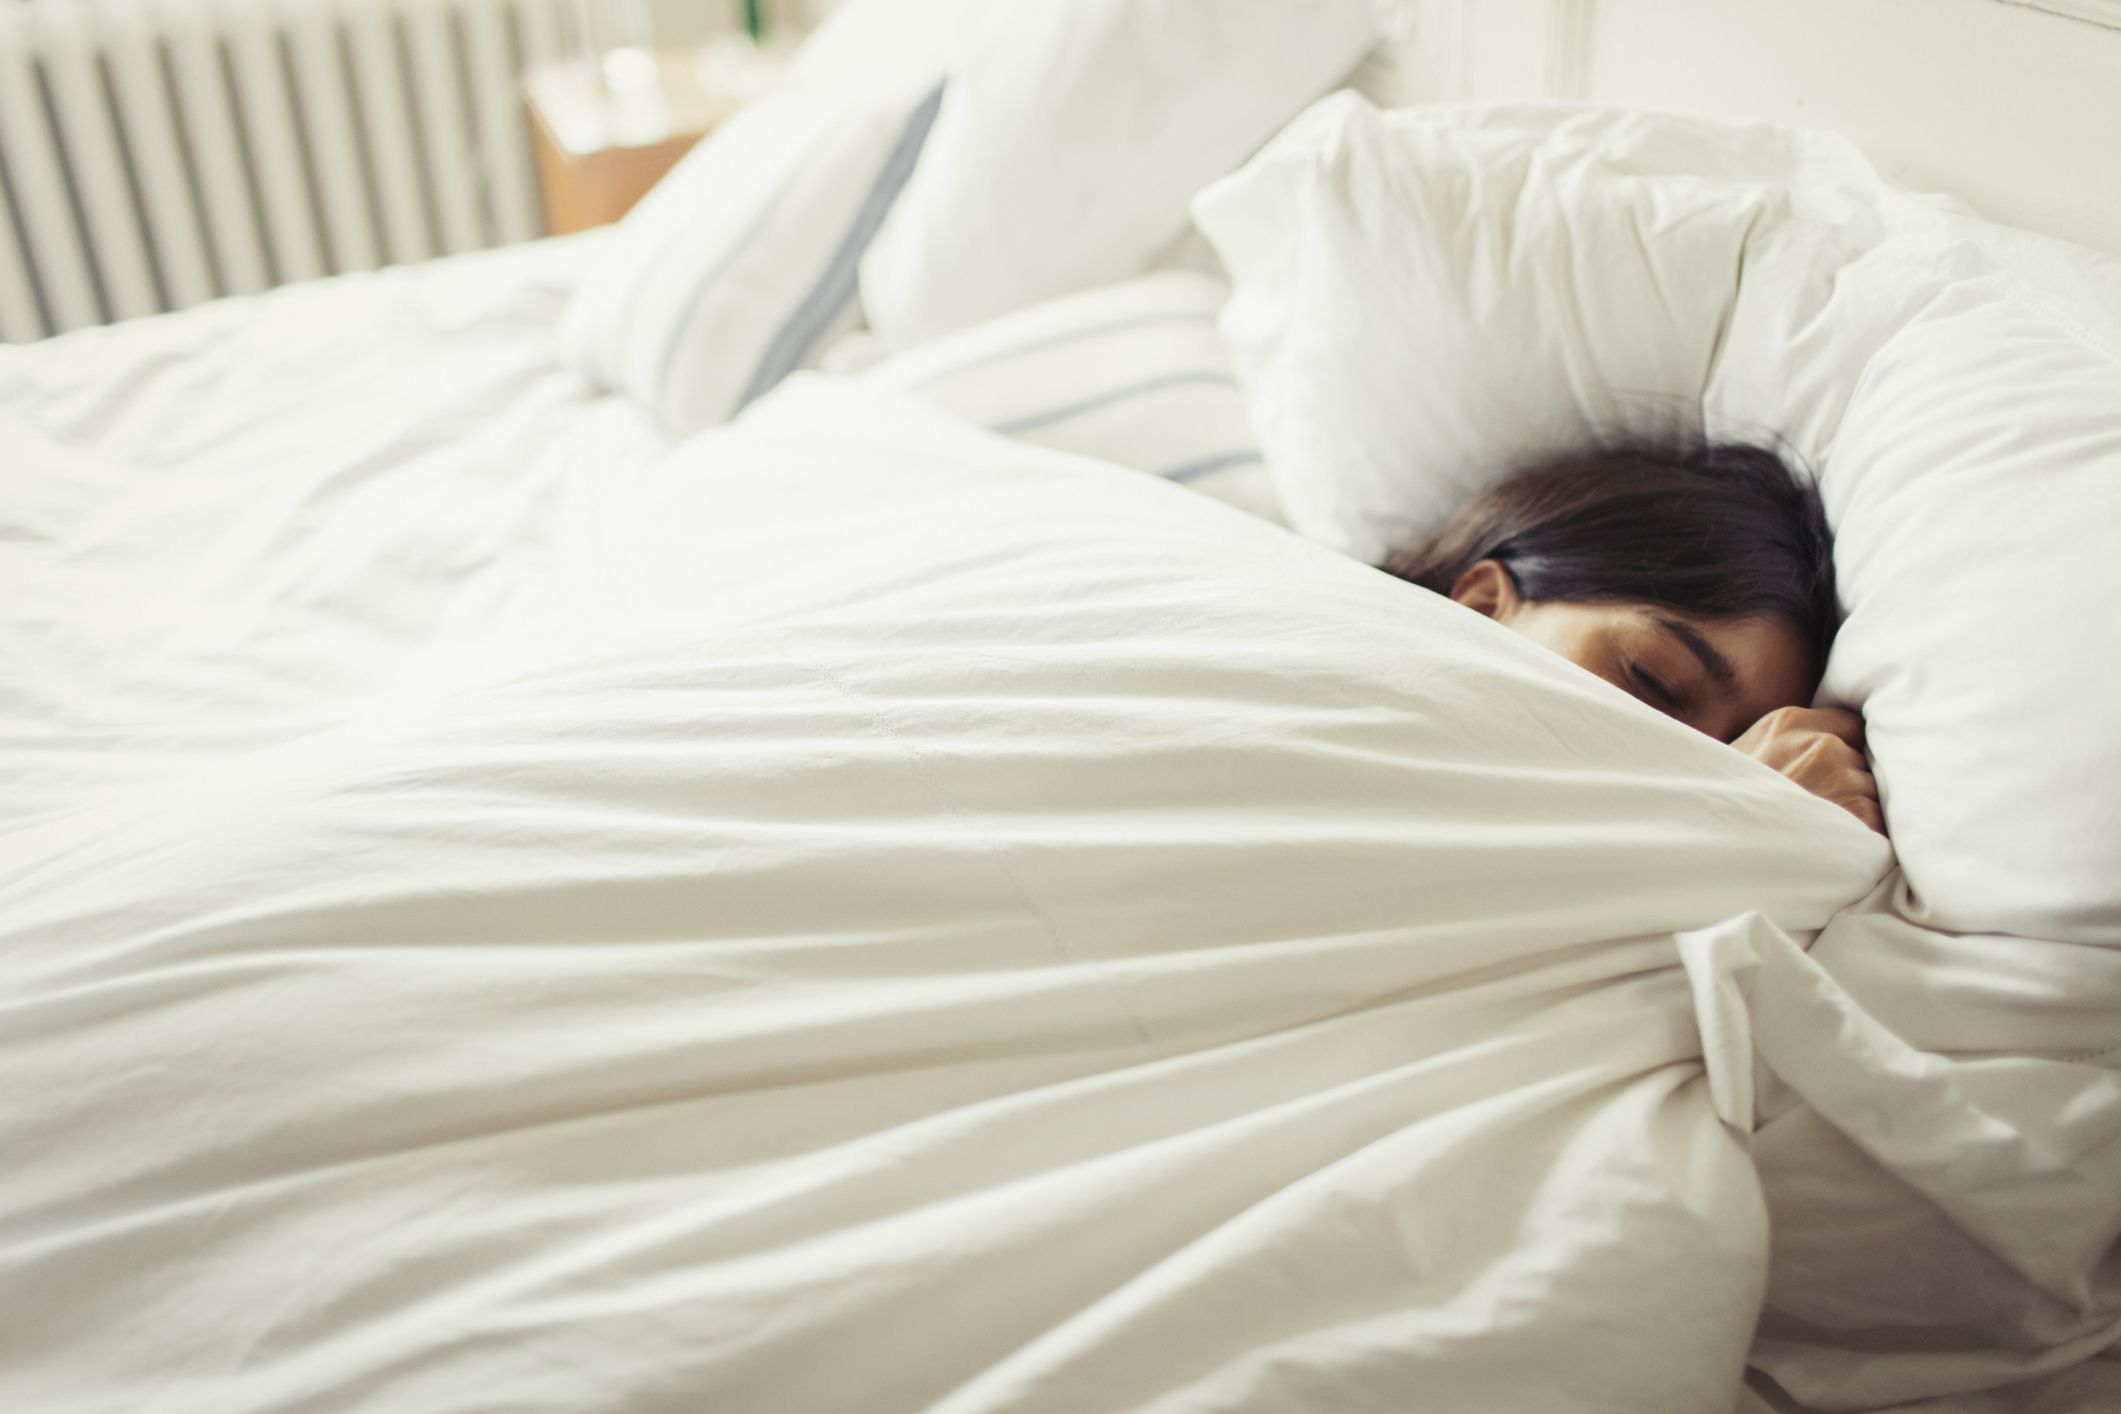 Falling Asleep to White Noise Might Be Doing More Harm Than Good